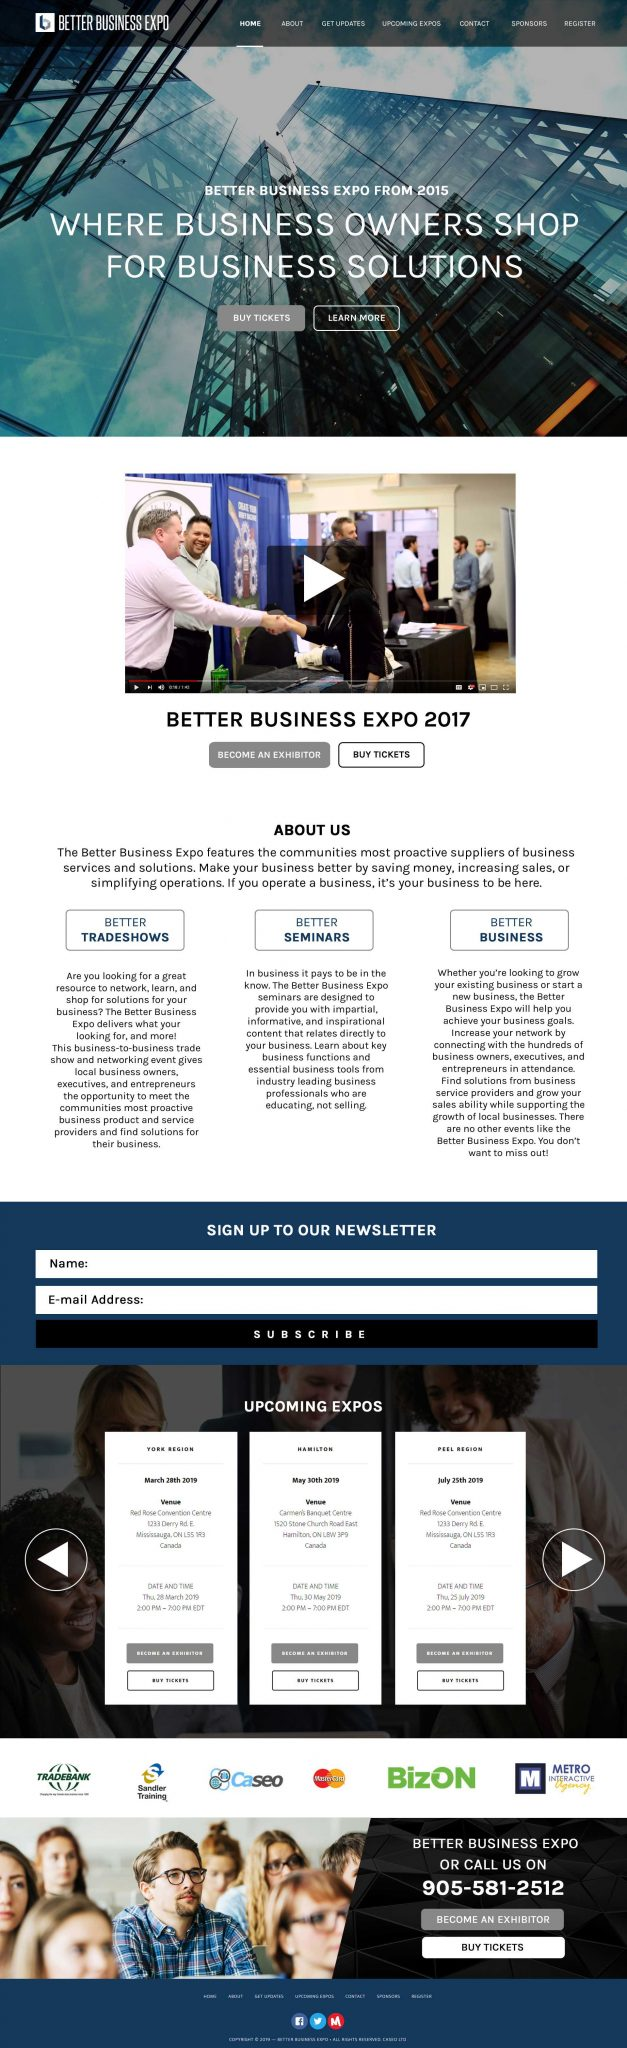 Better Business Expo Website